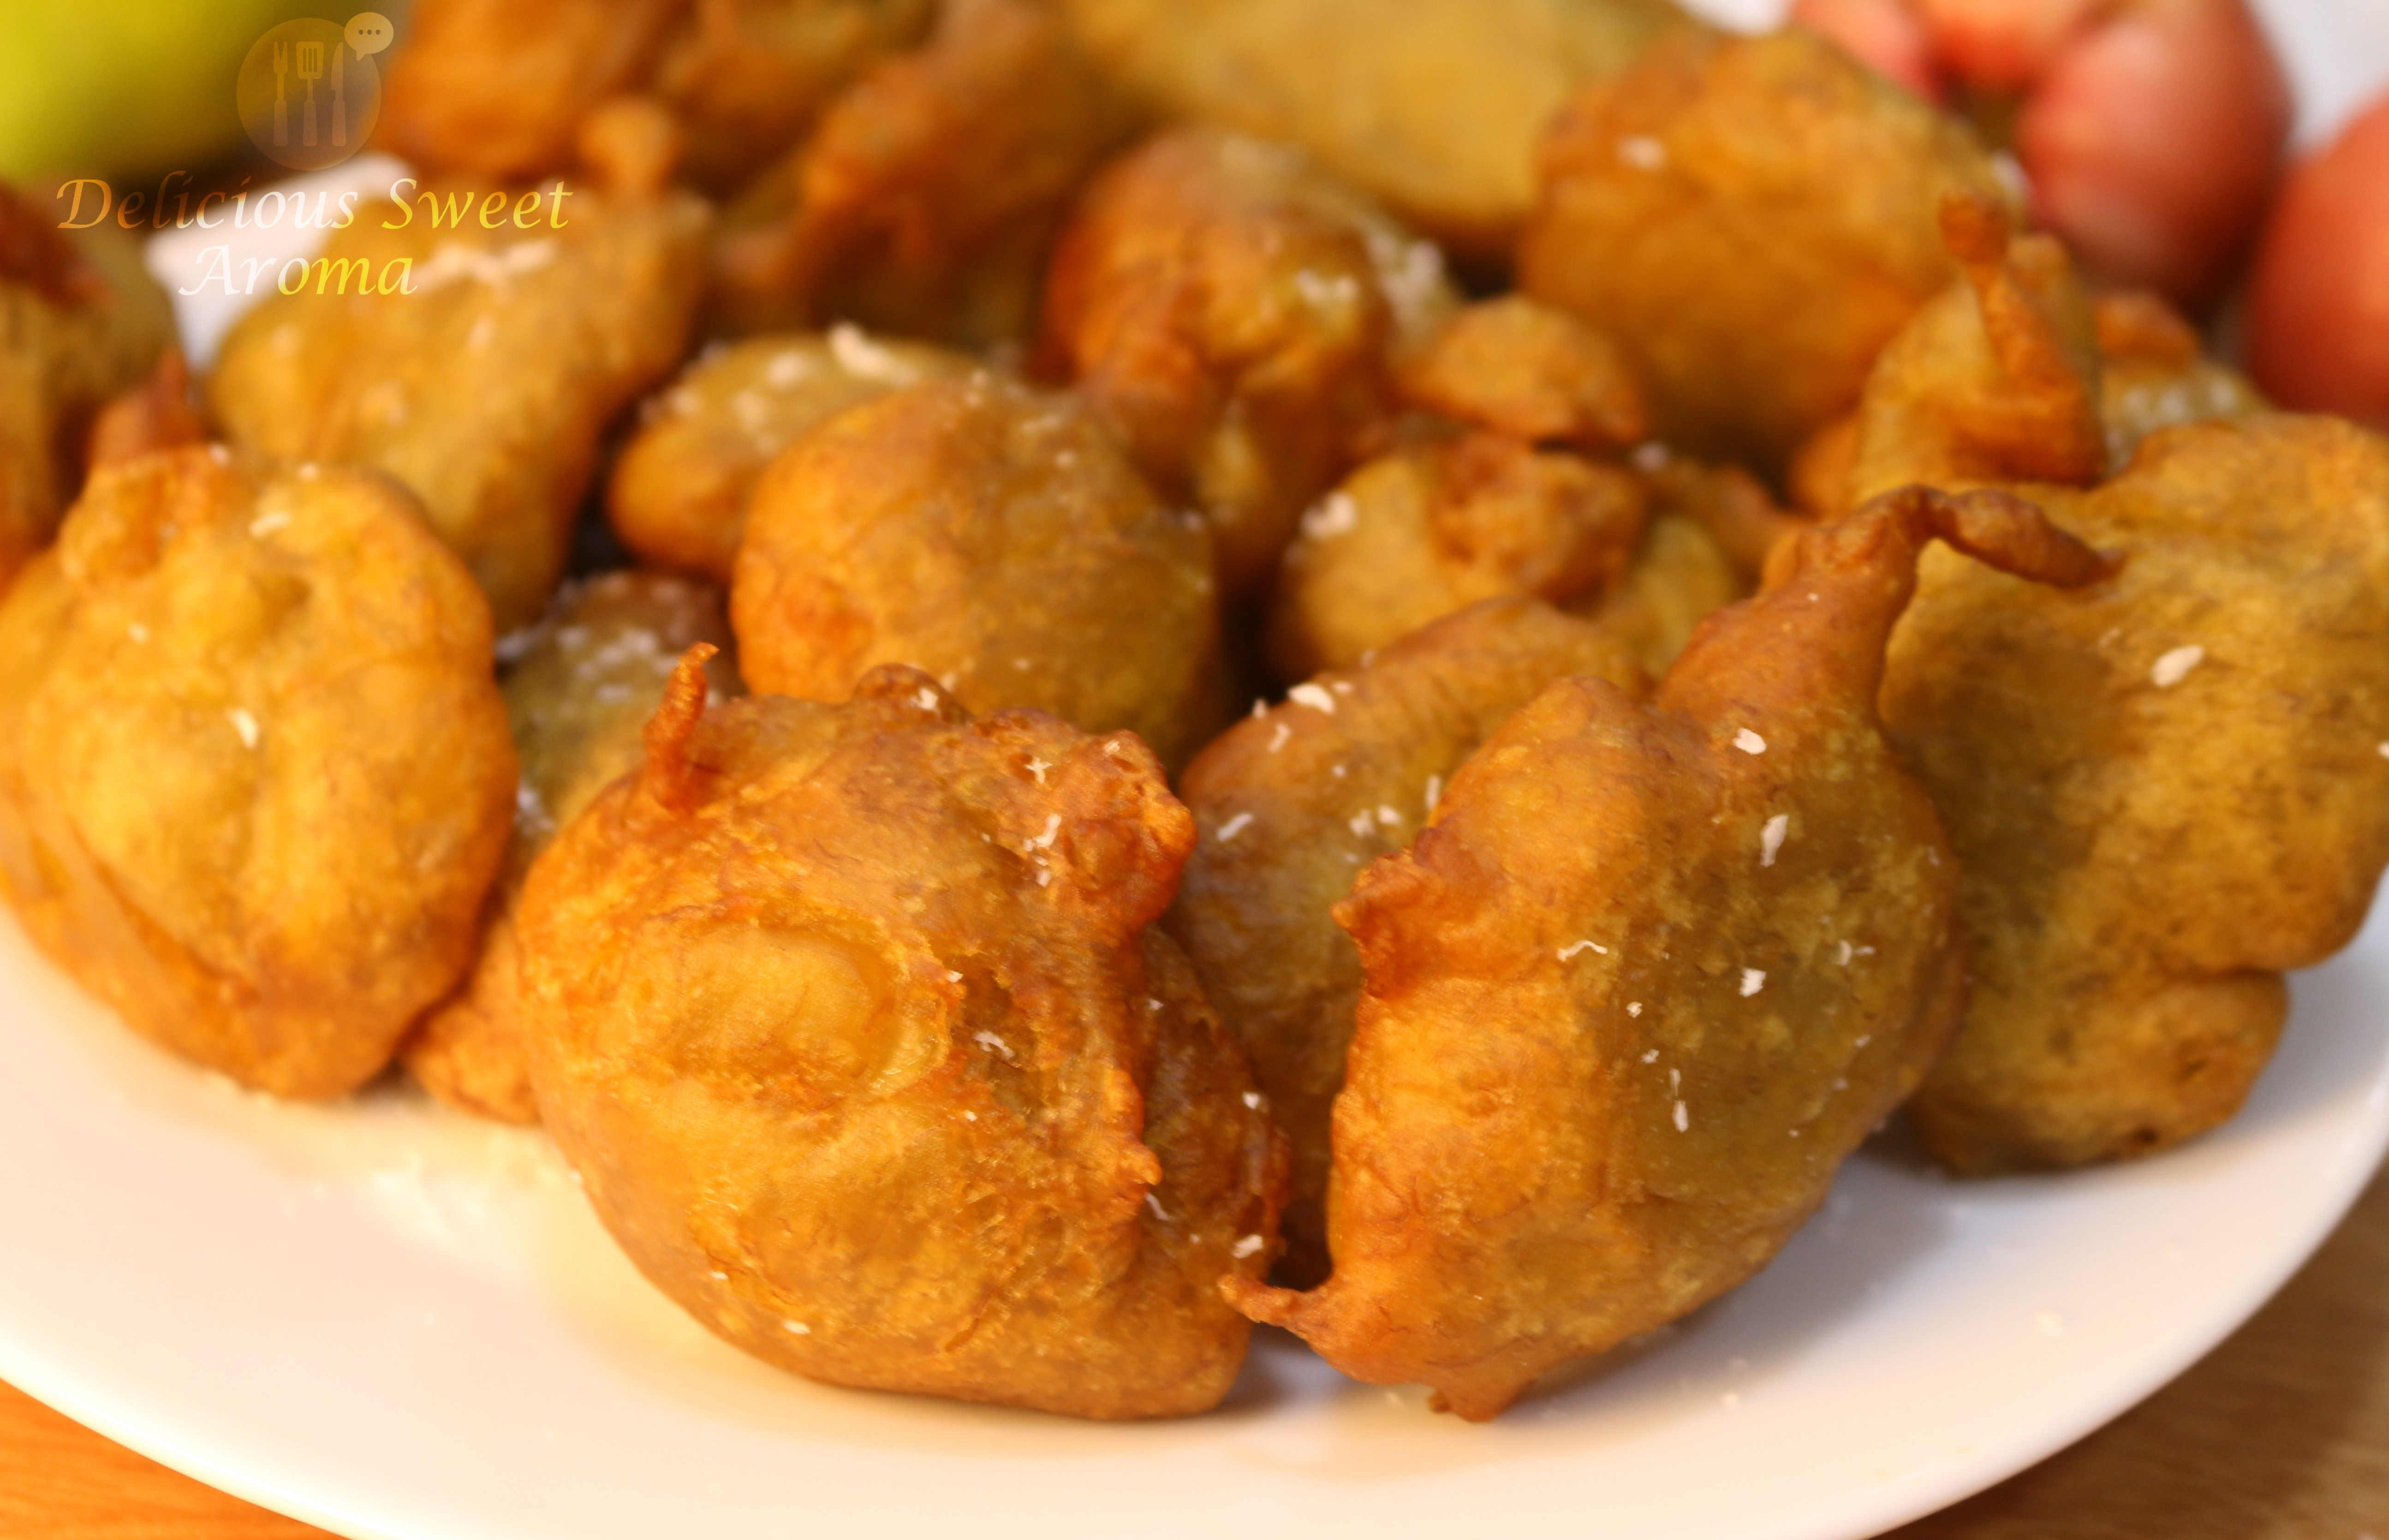 Banana Fritters   Snacks Tea-Time   Delicious Sweet Aroma